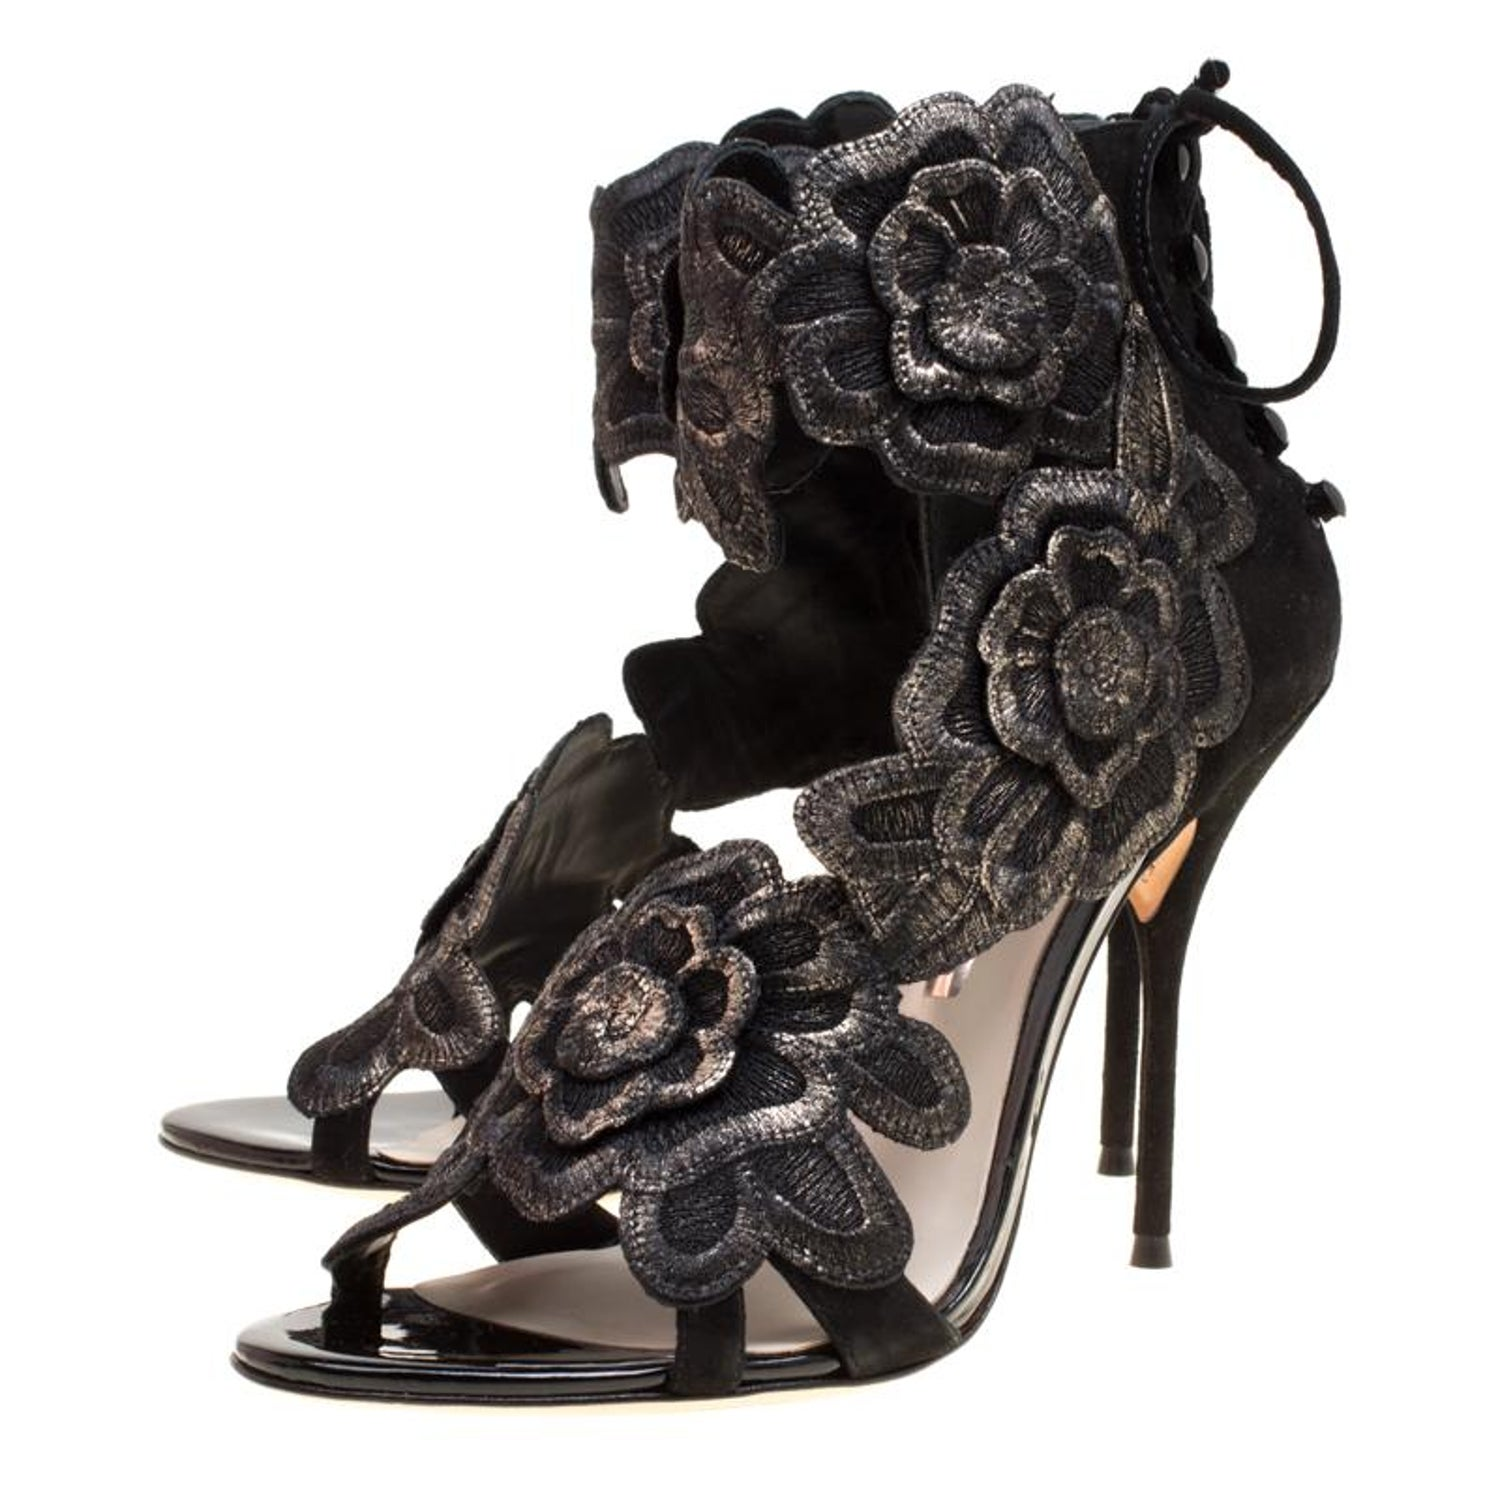 2b5a073575b3 Sophia Webster Black Suede Winona Floral Embroidered Ankle Cuff Sandals  Size 41 For Sale at 1stdibs